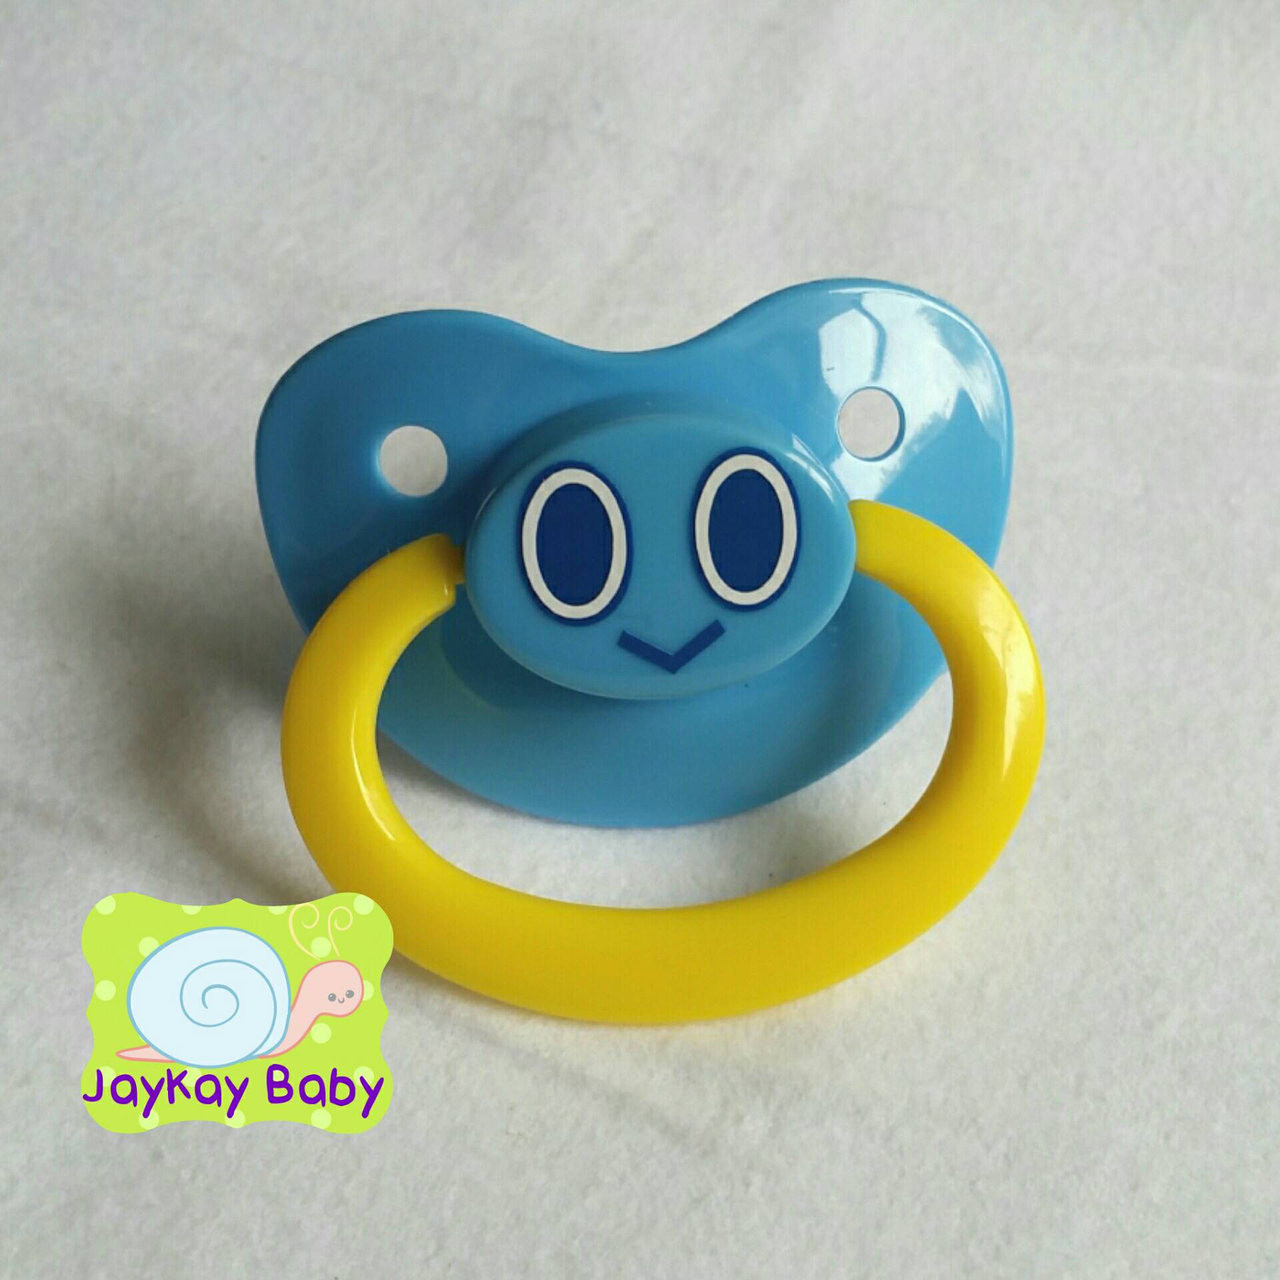 Chao Character Themed Adult Pacifier Jaykaybaby